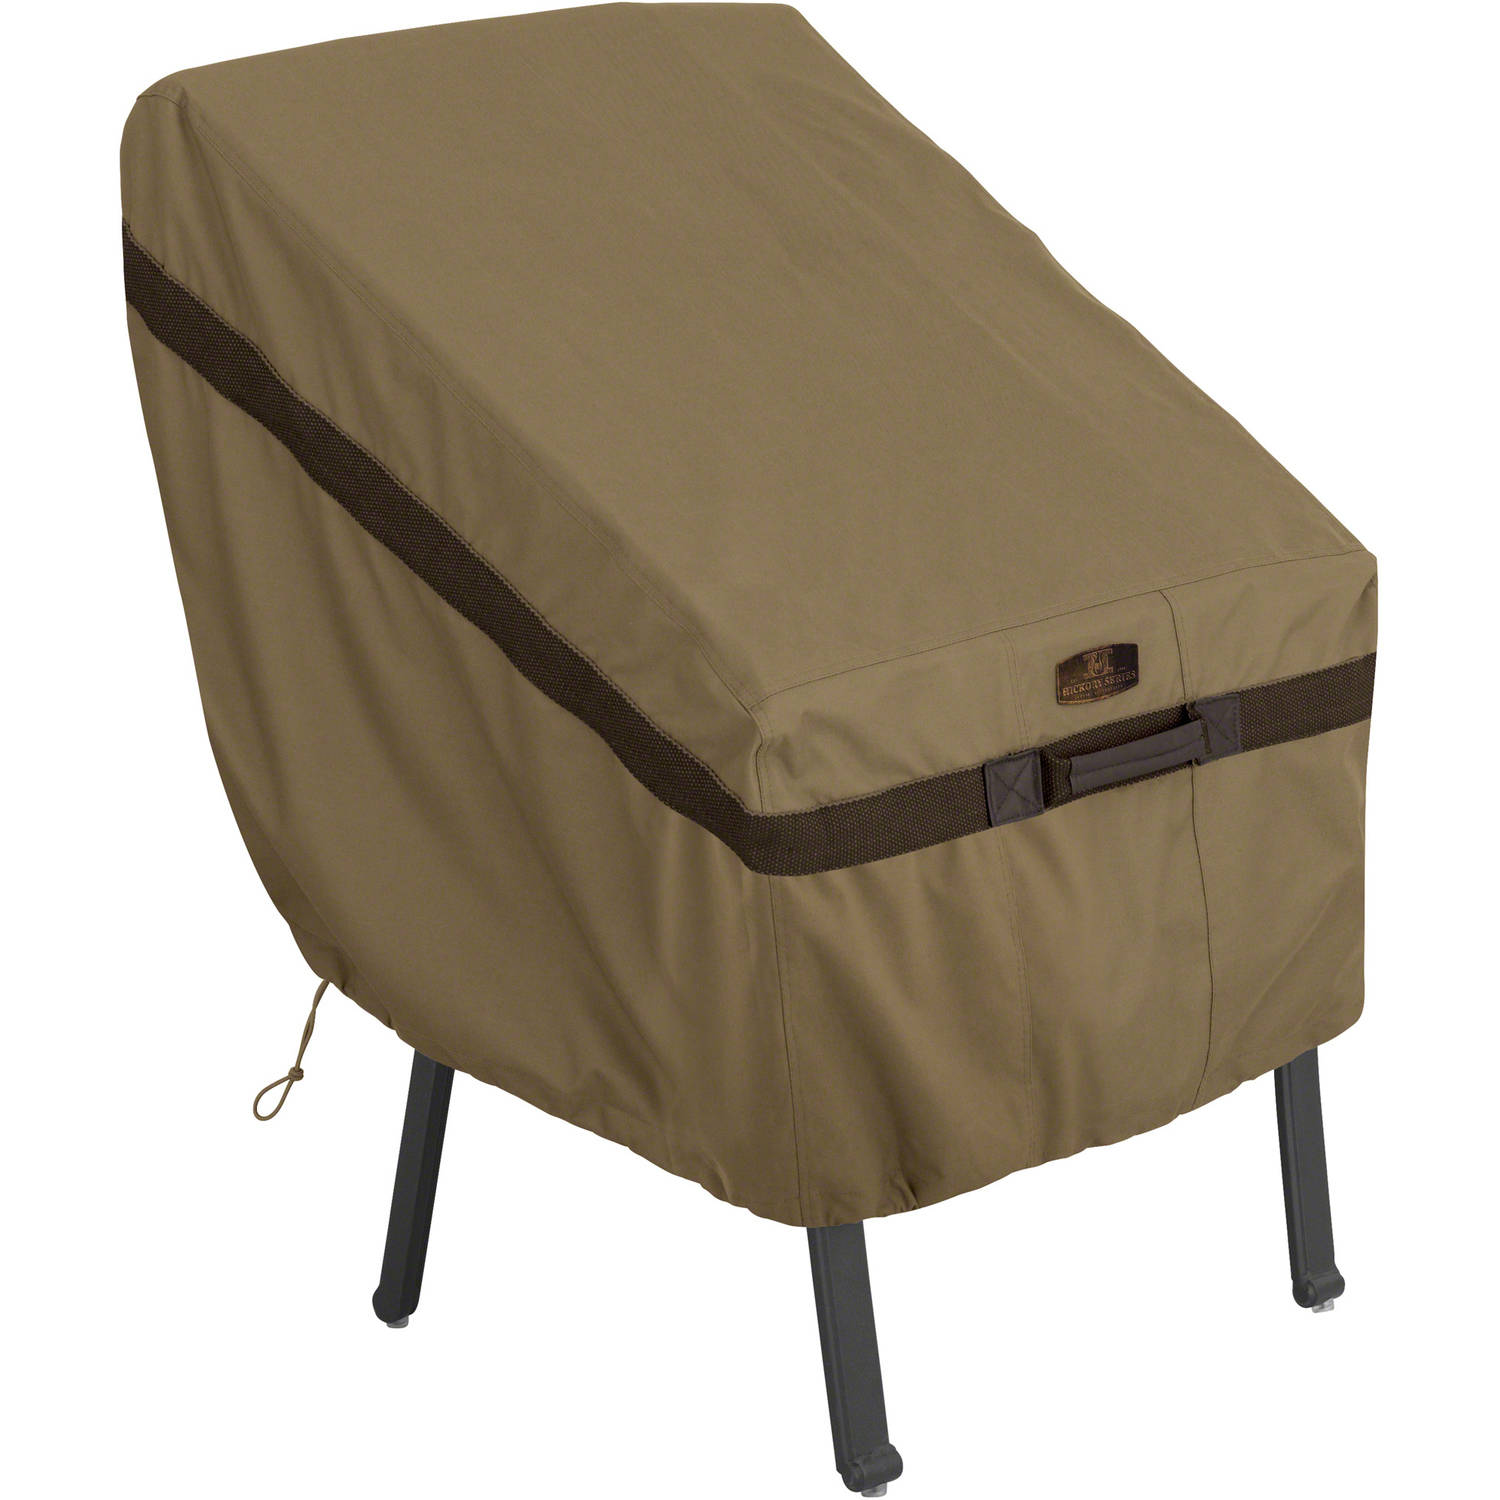 Classic Accessories Hickory Standard Chair Patio Furniture Storage Cover, Tan